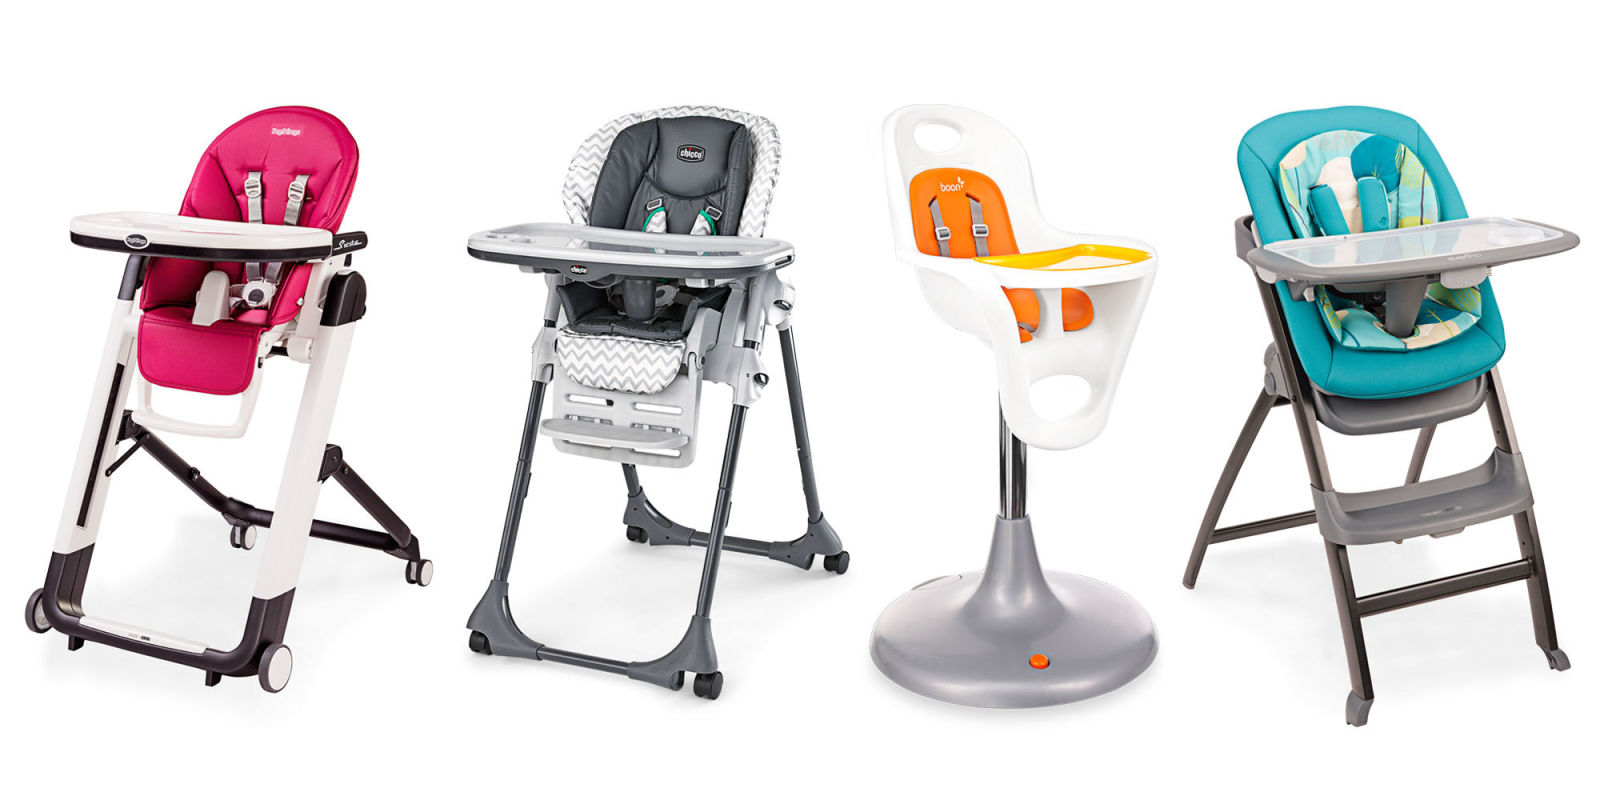 High Chair That Attaches To Chair Baby Eating Chair Attached To Table